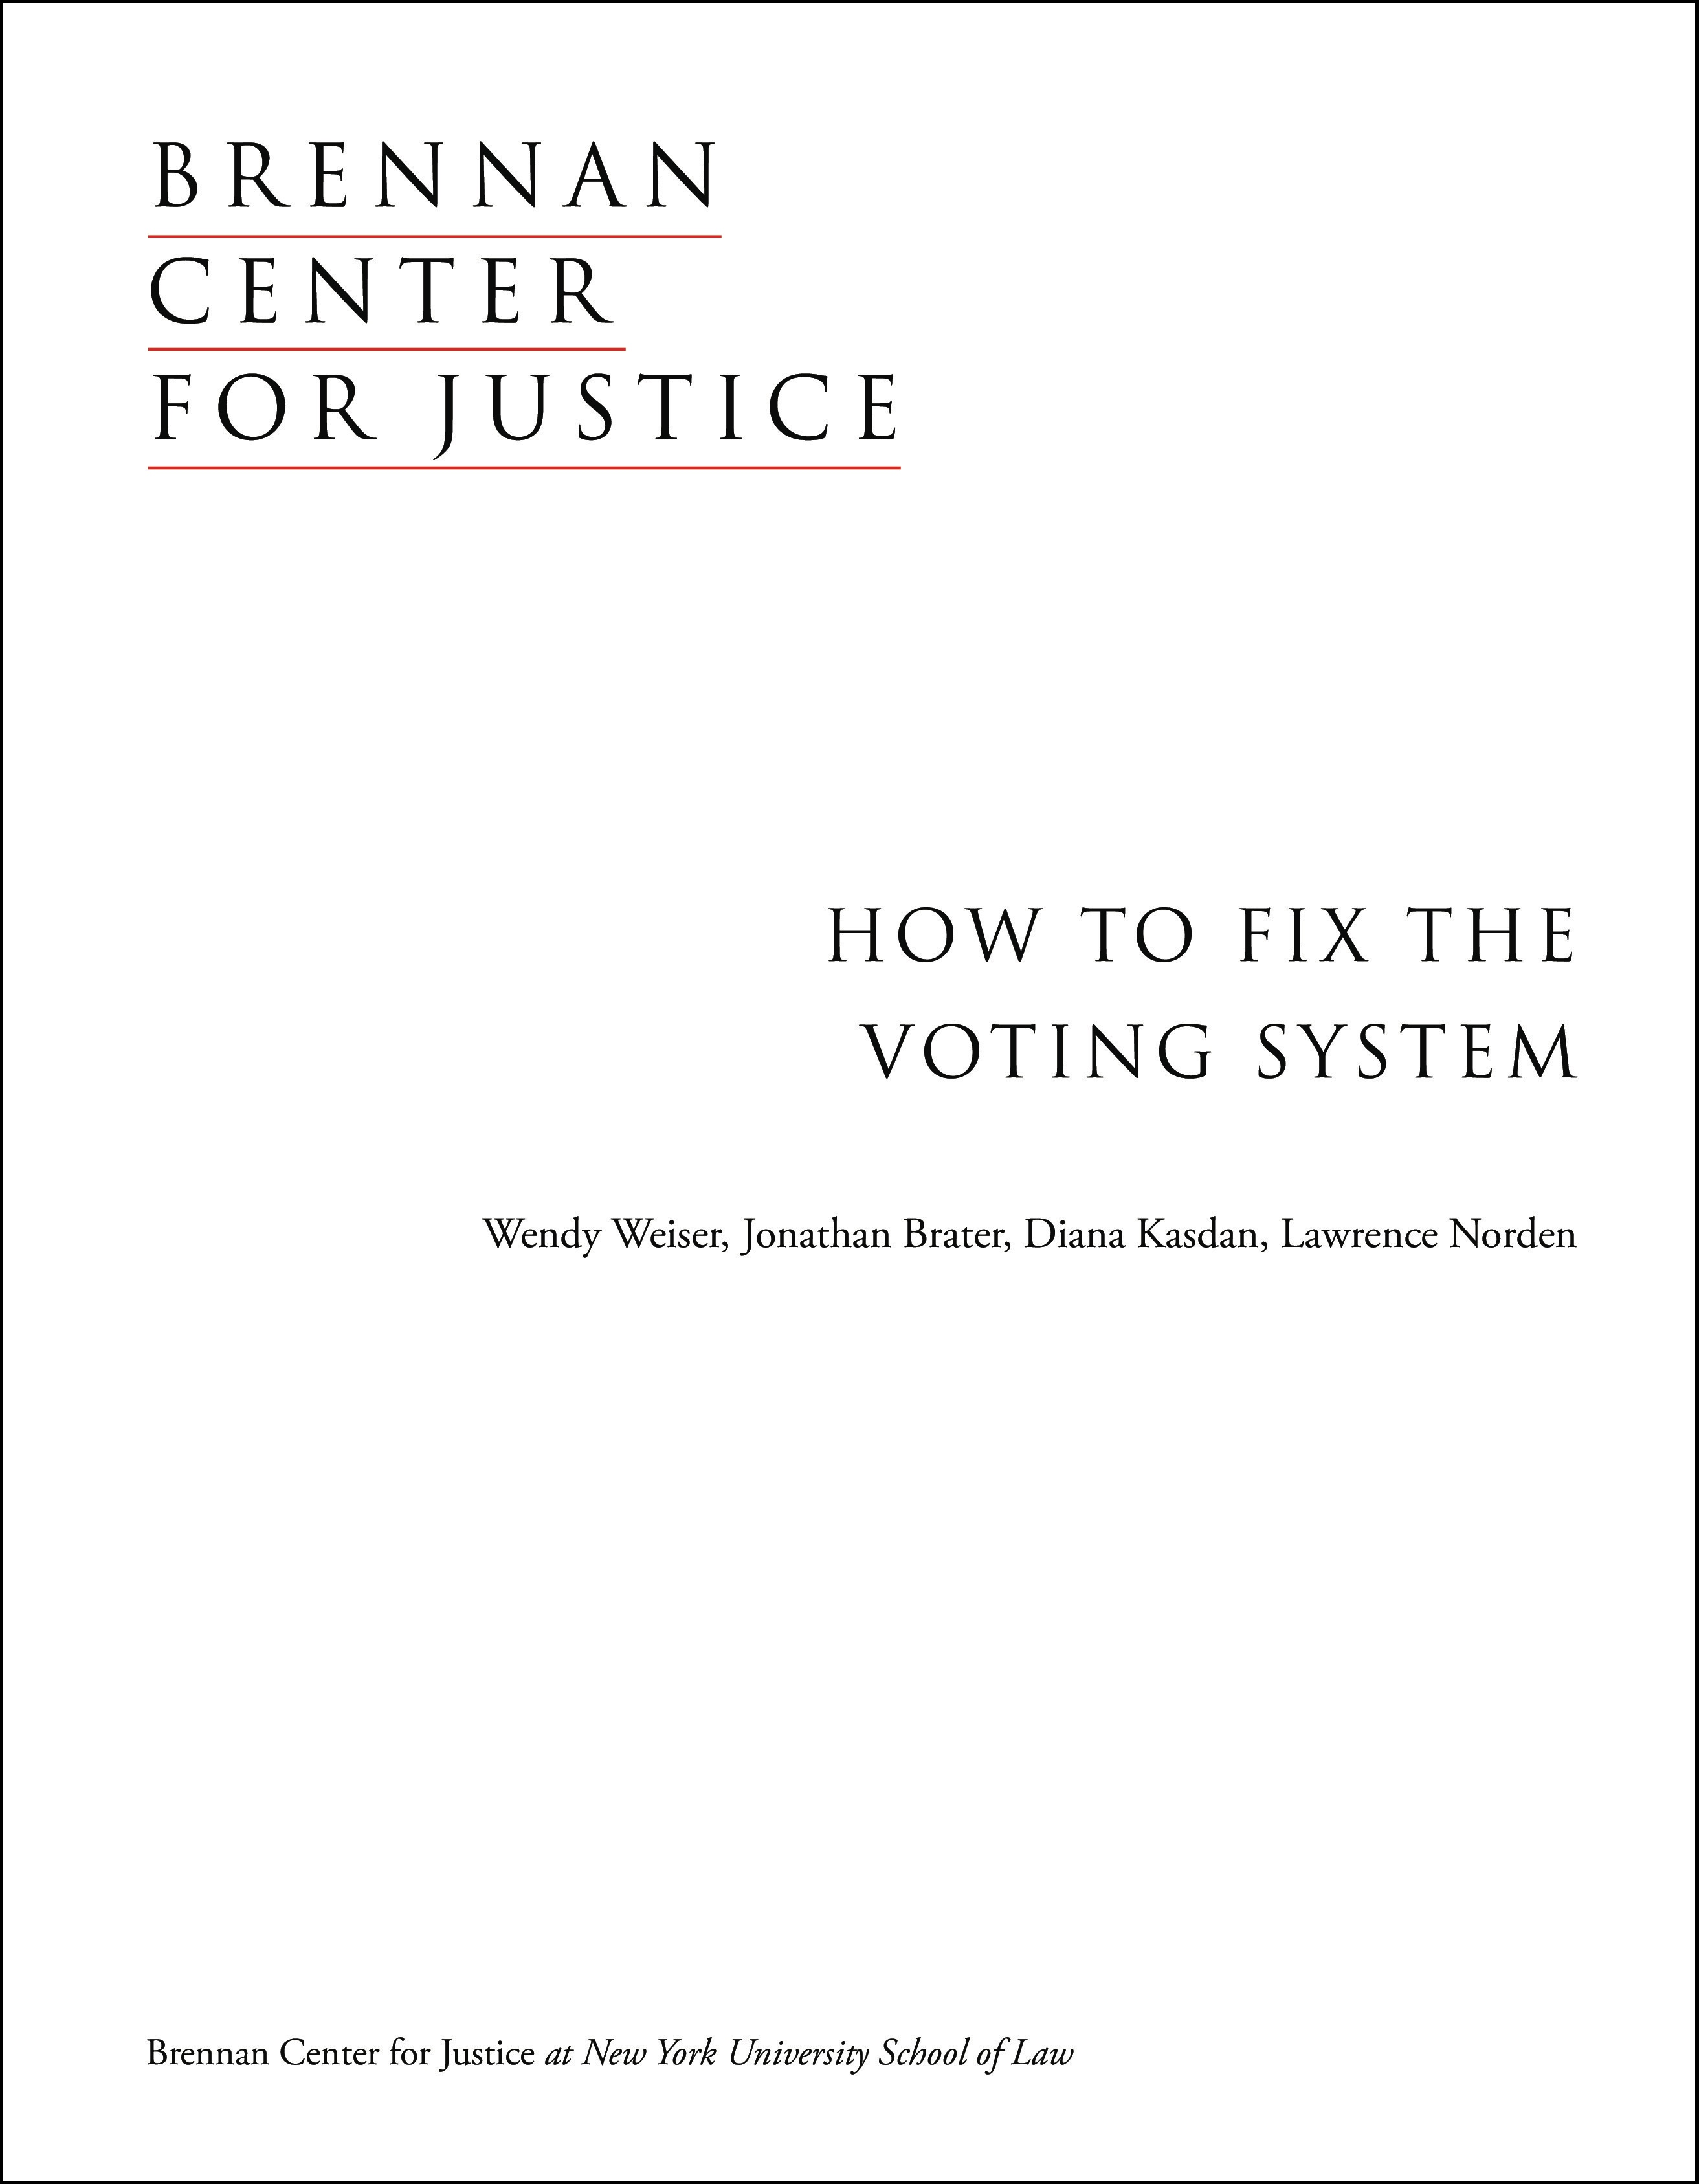 How to Fix the Voting System